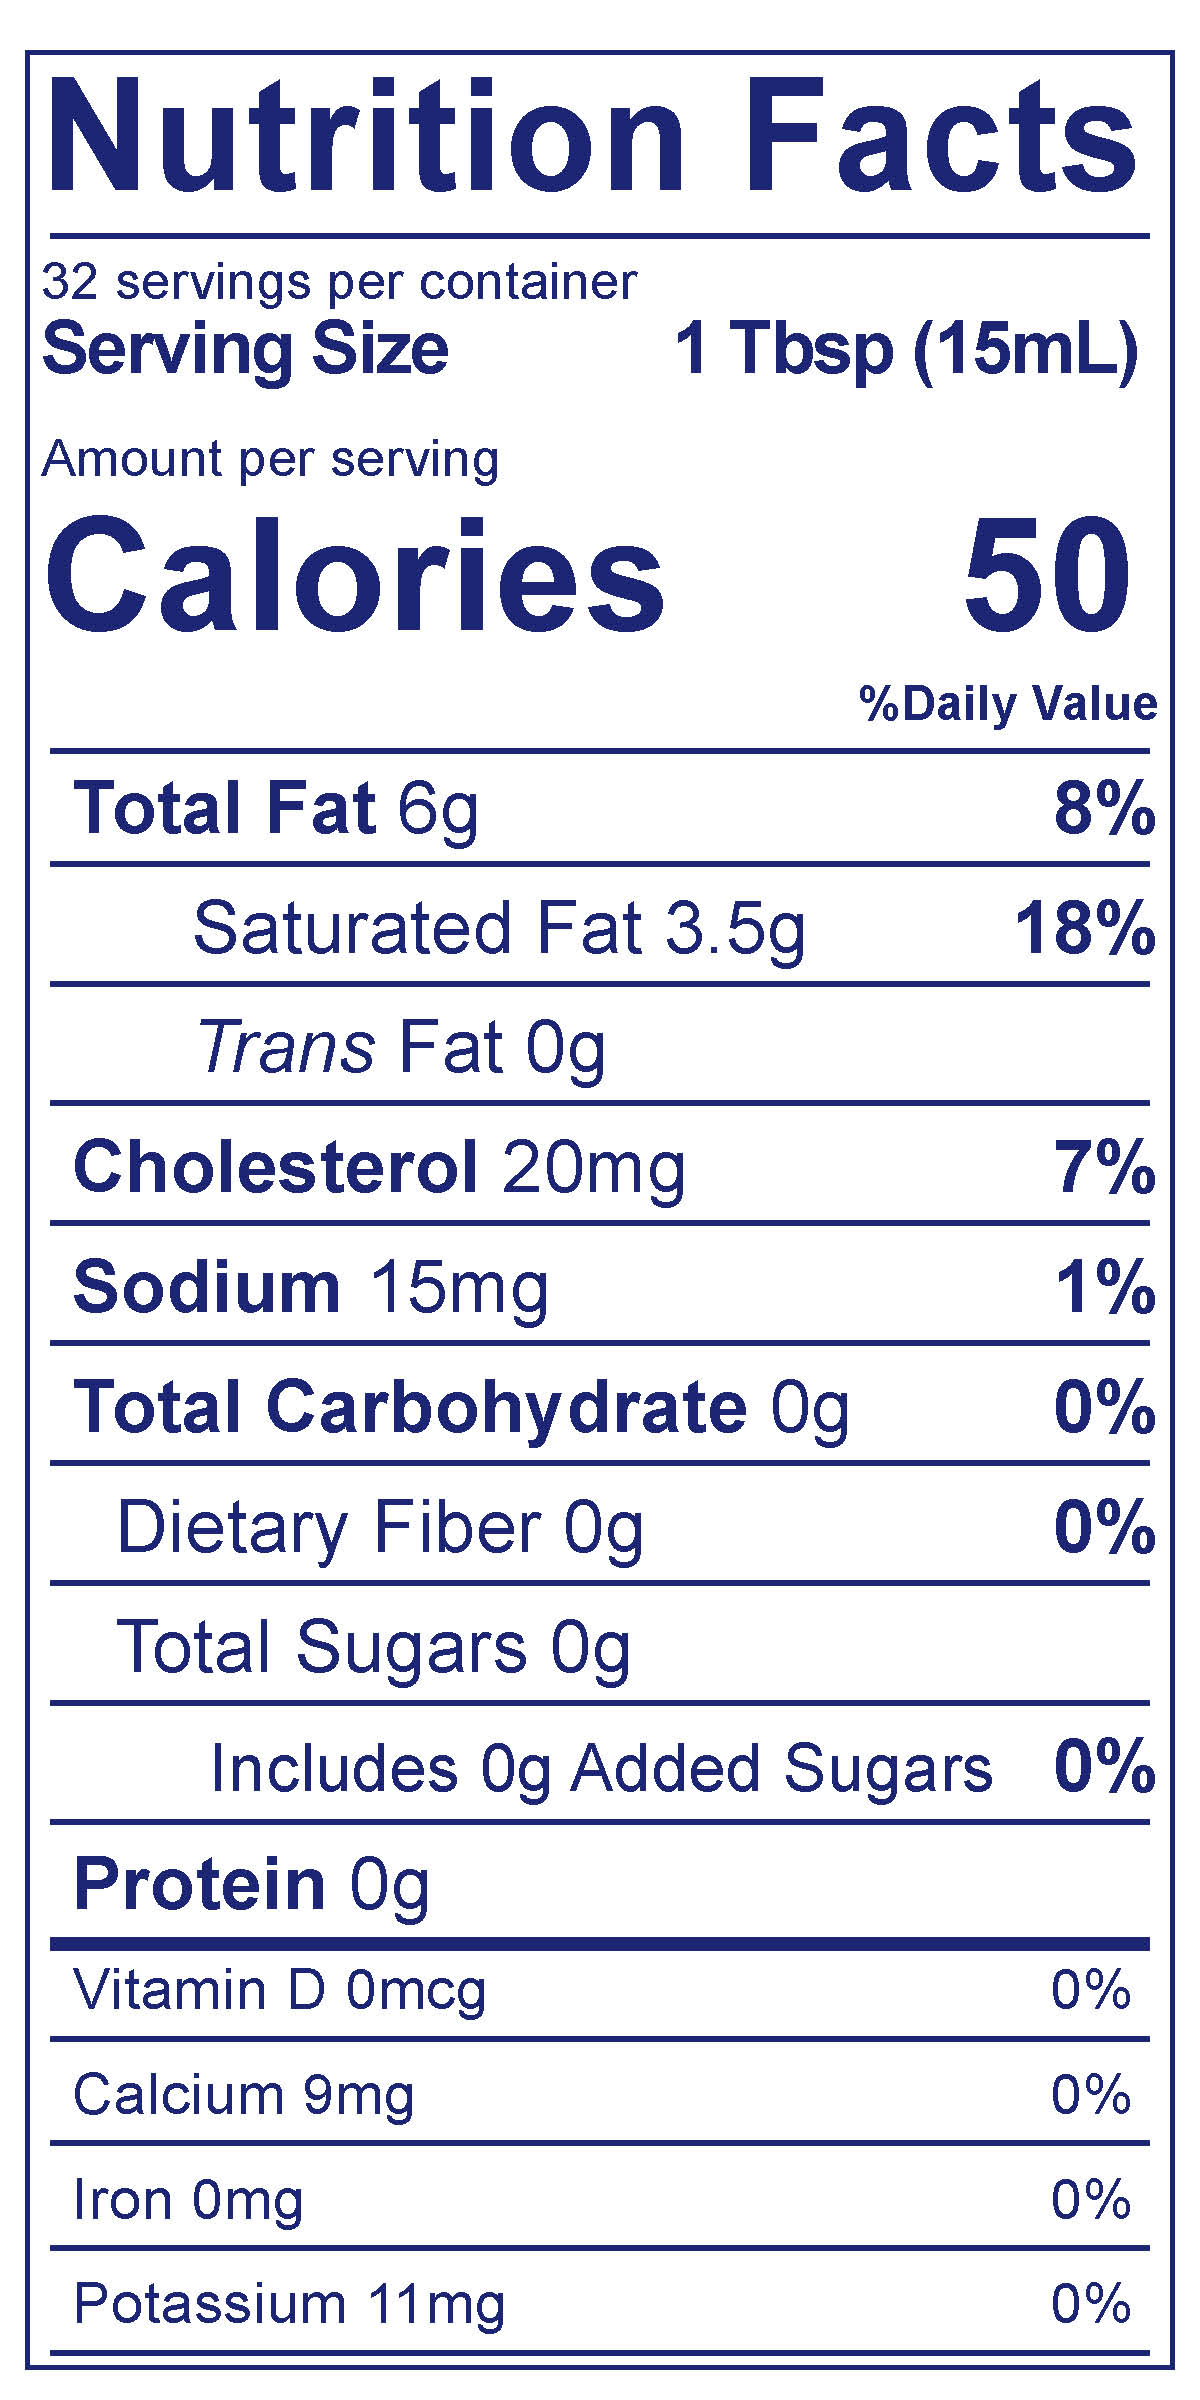 Heavy Whipping Cream - Nutrition Facts